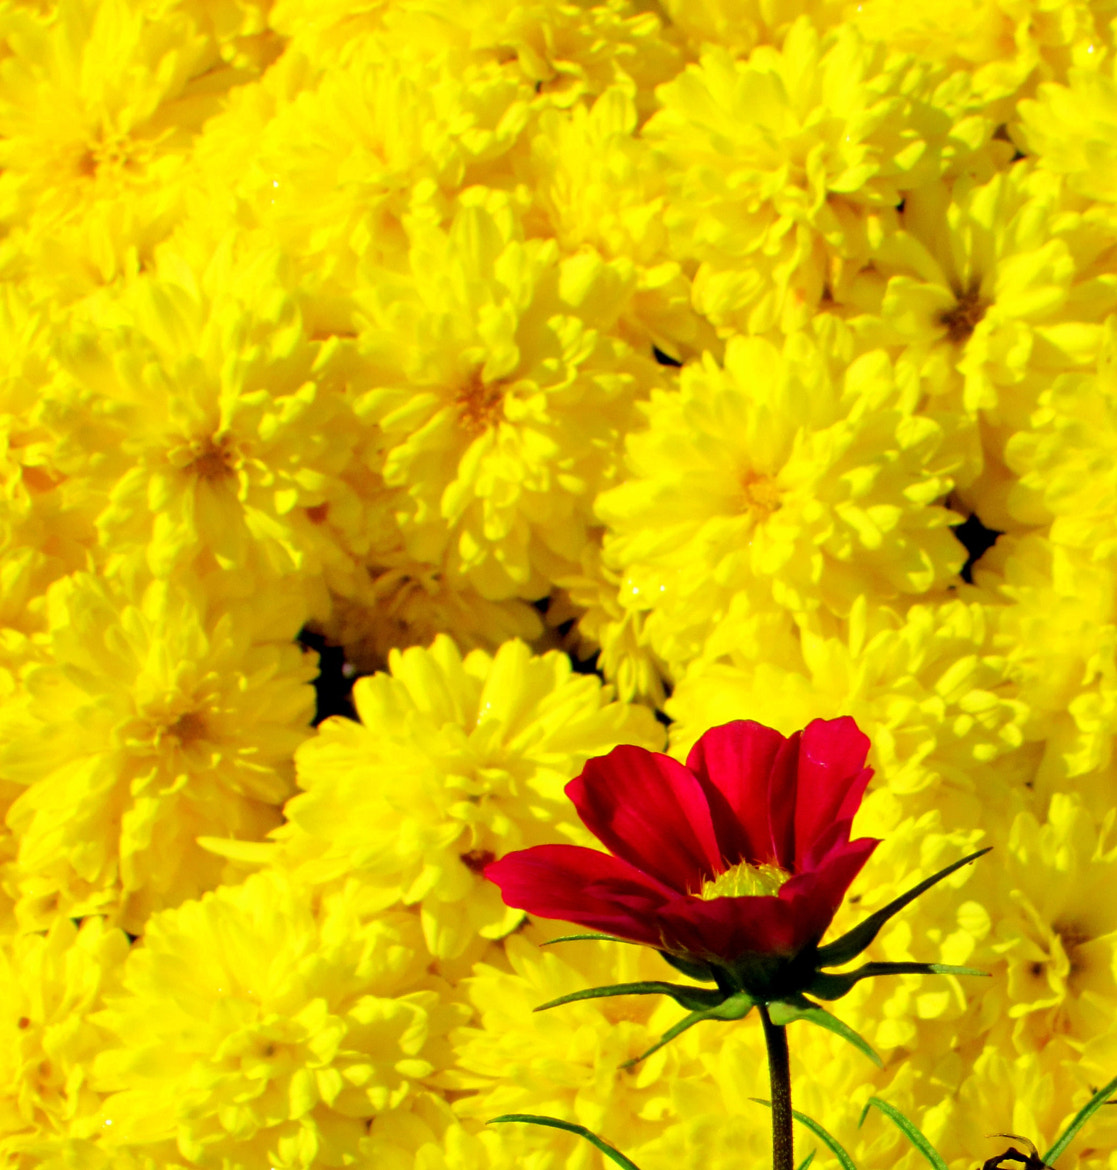 Photograph     Red on yellow   by Uta Abate on 500px